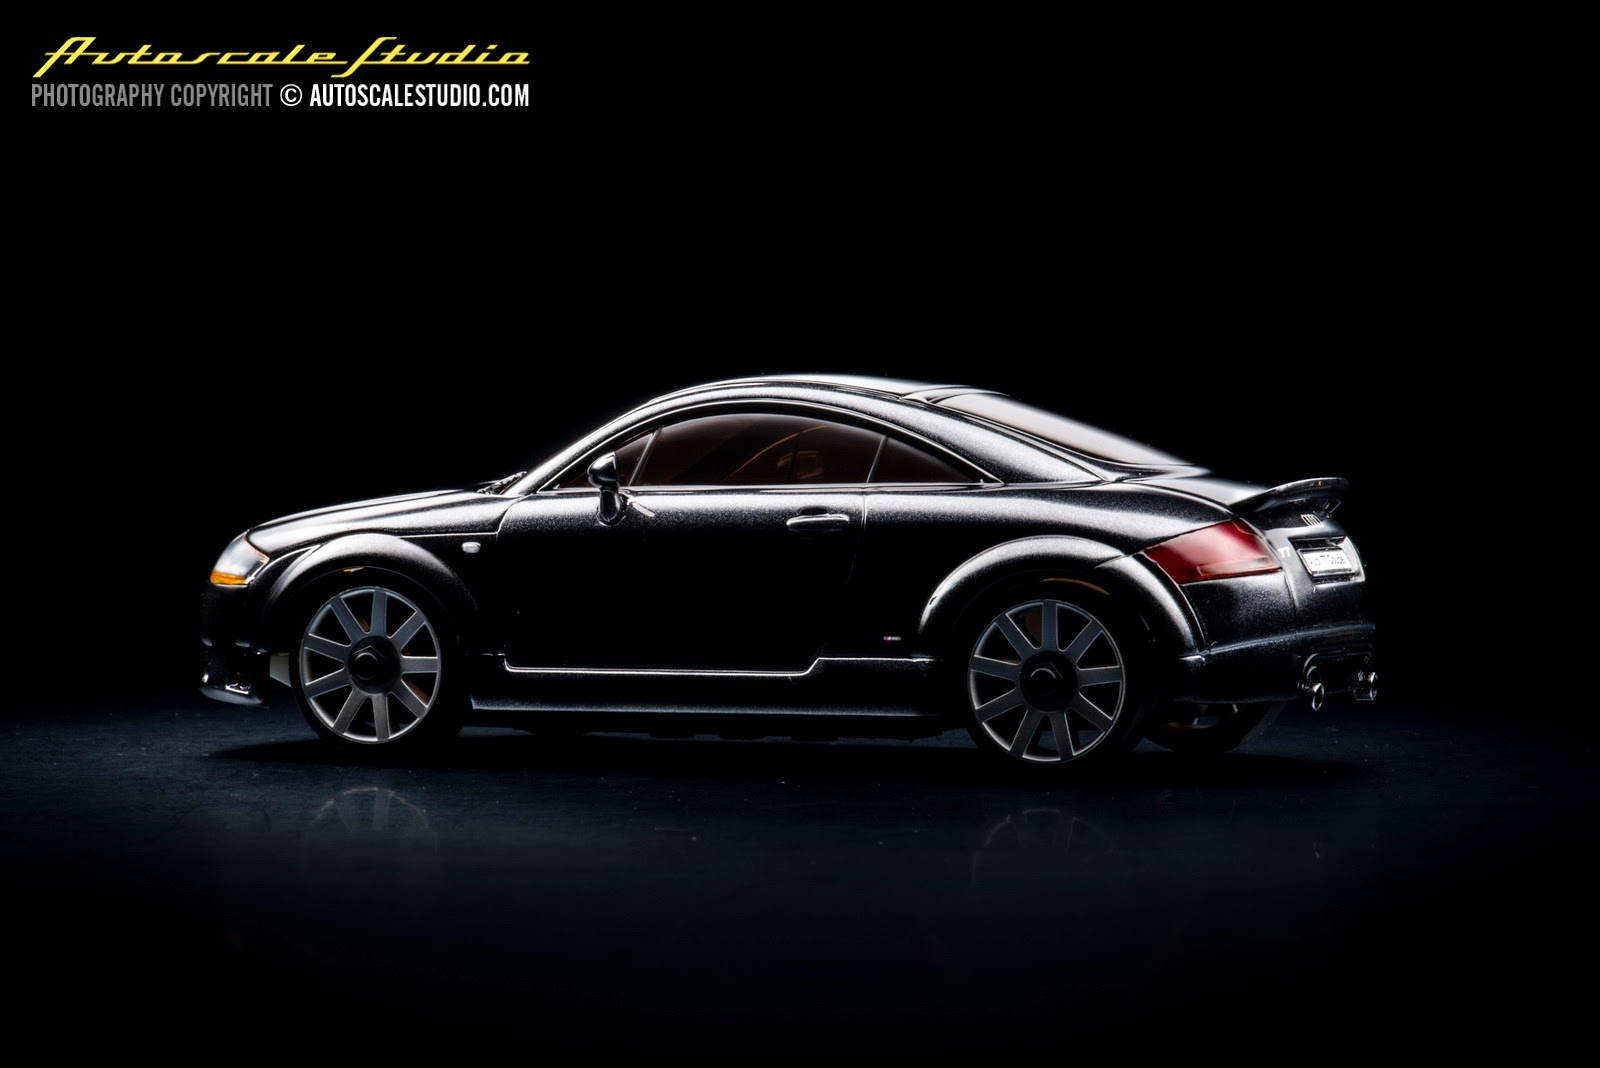 mzx406bk audi tt coup quattro s line black autoscale. Black Bedroom Furniture Sets. Home Design Ideas